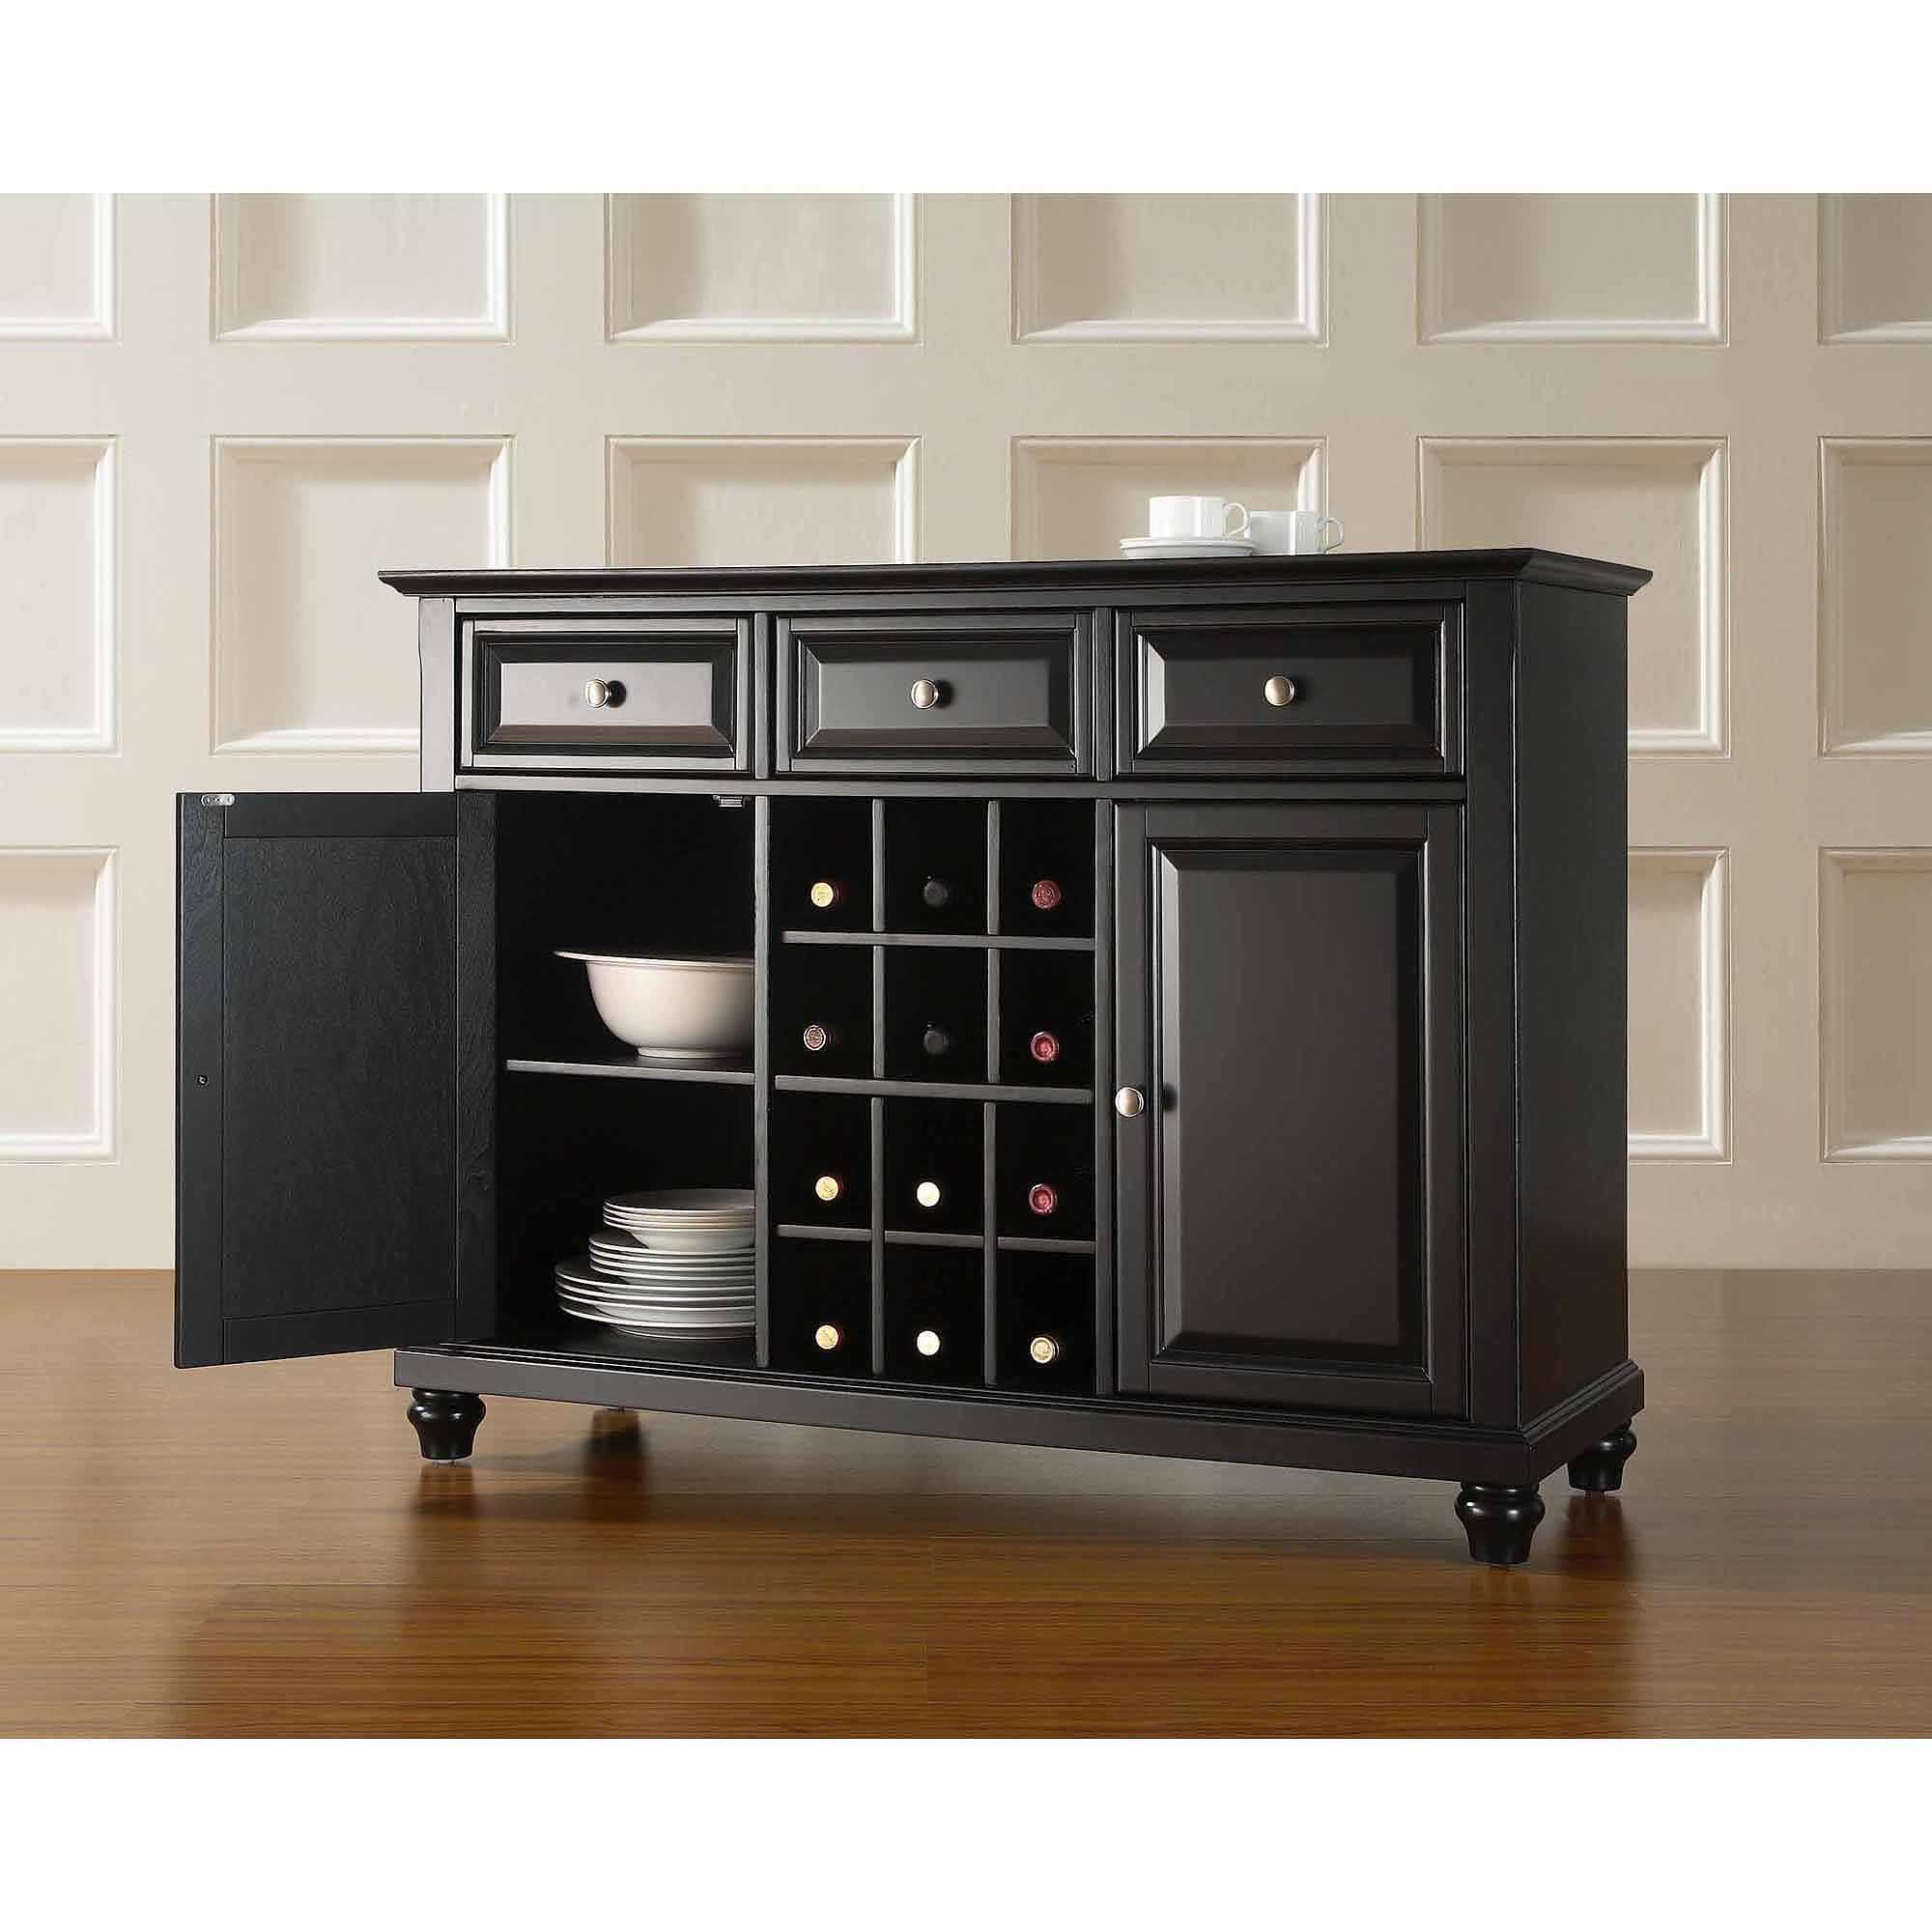 Bon Crosley Furniture Cambridge Buffet Server And Sideboard Cabinet With Wine  Storage   Walmart.com